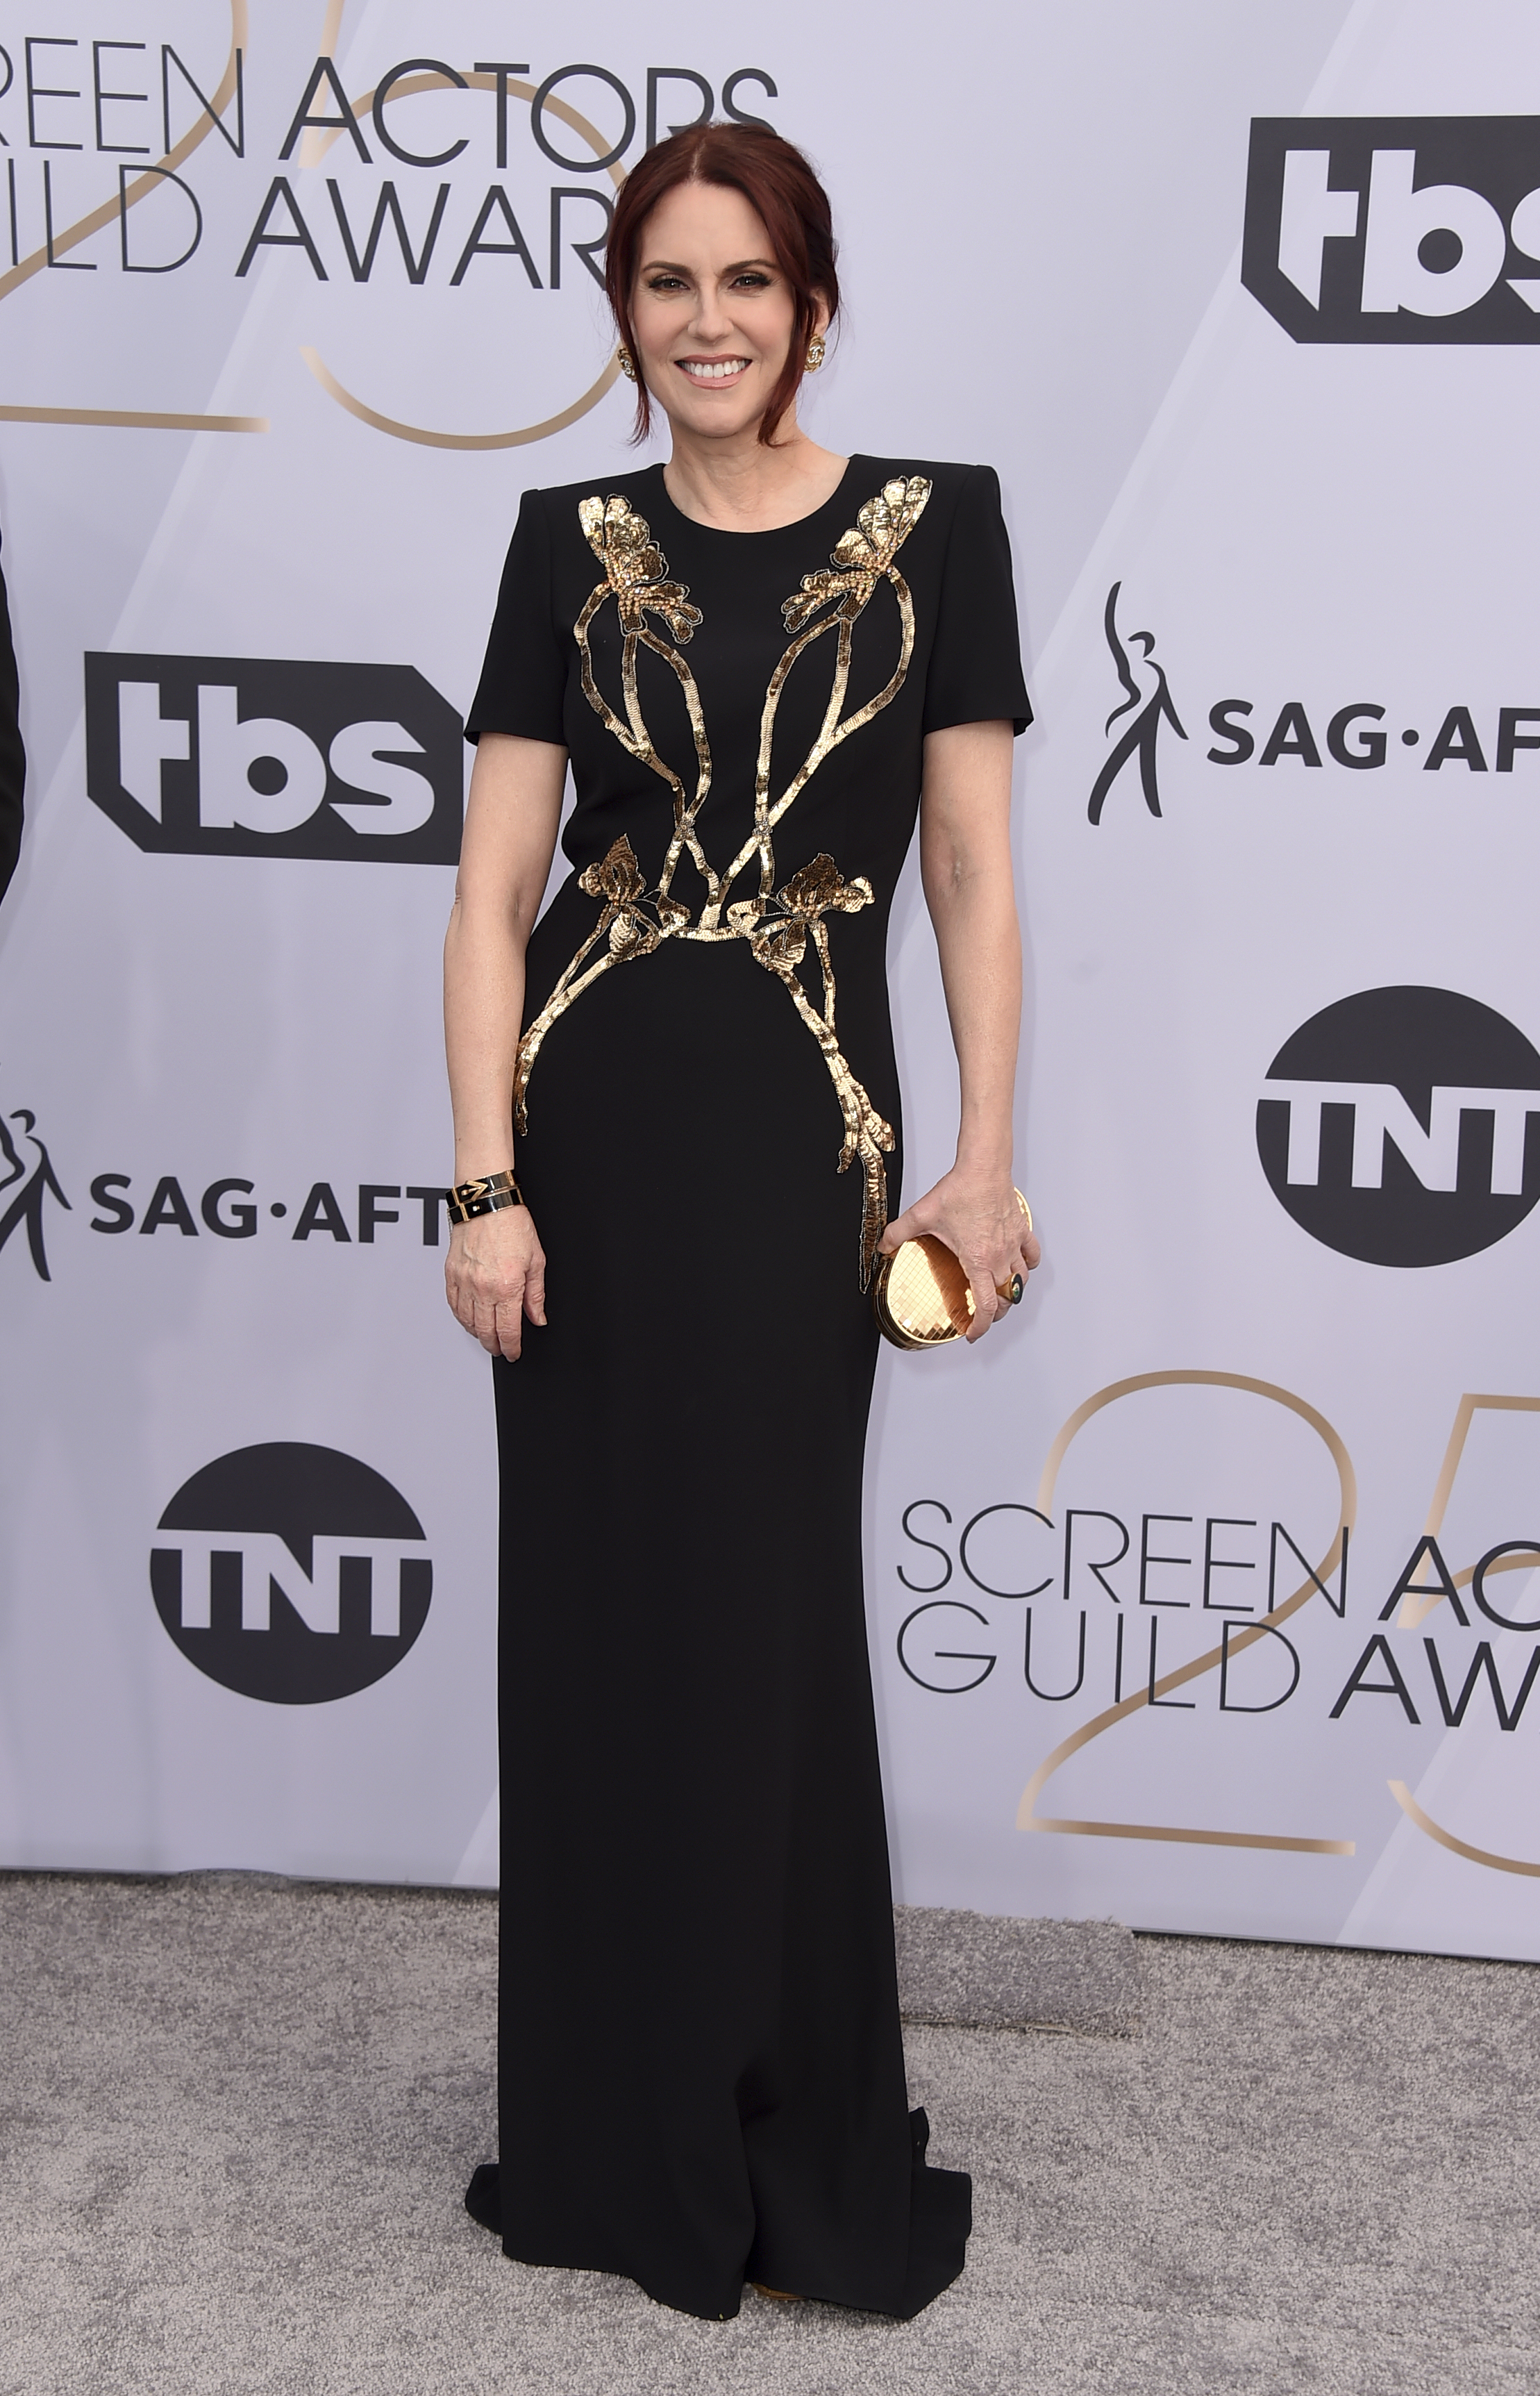 Megan Mullally arrives at the 25th annual Screen Actors Guild Awards